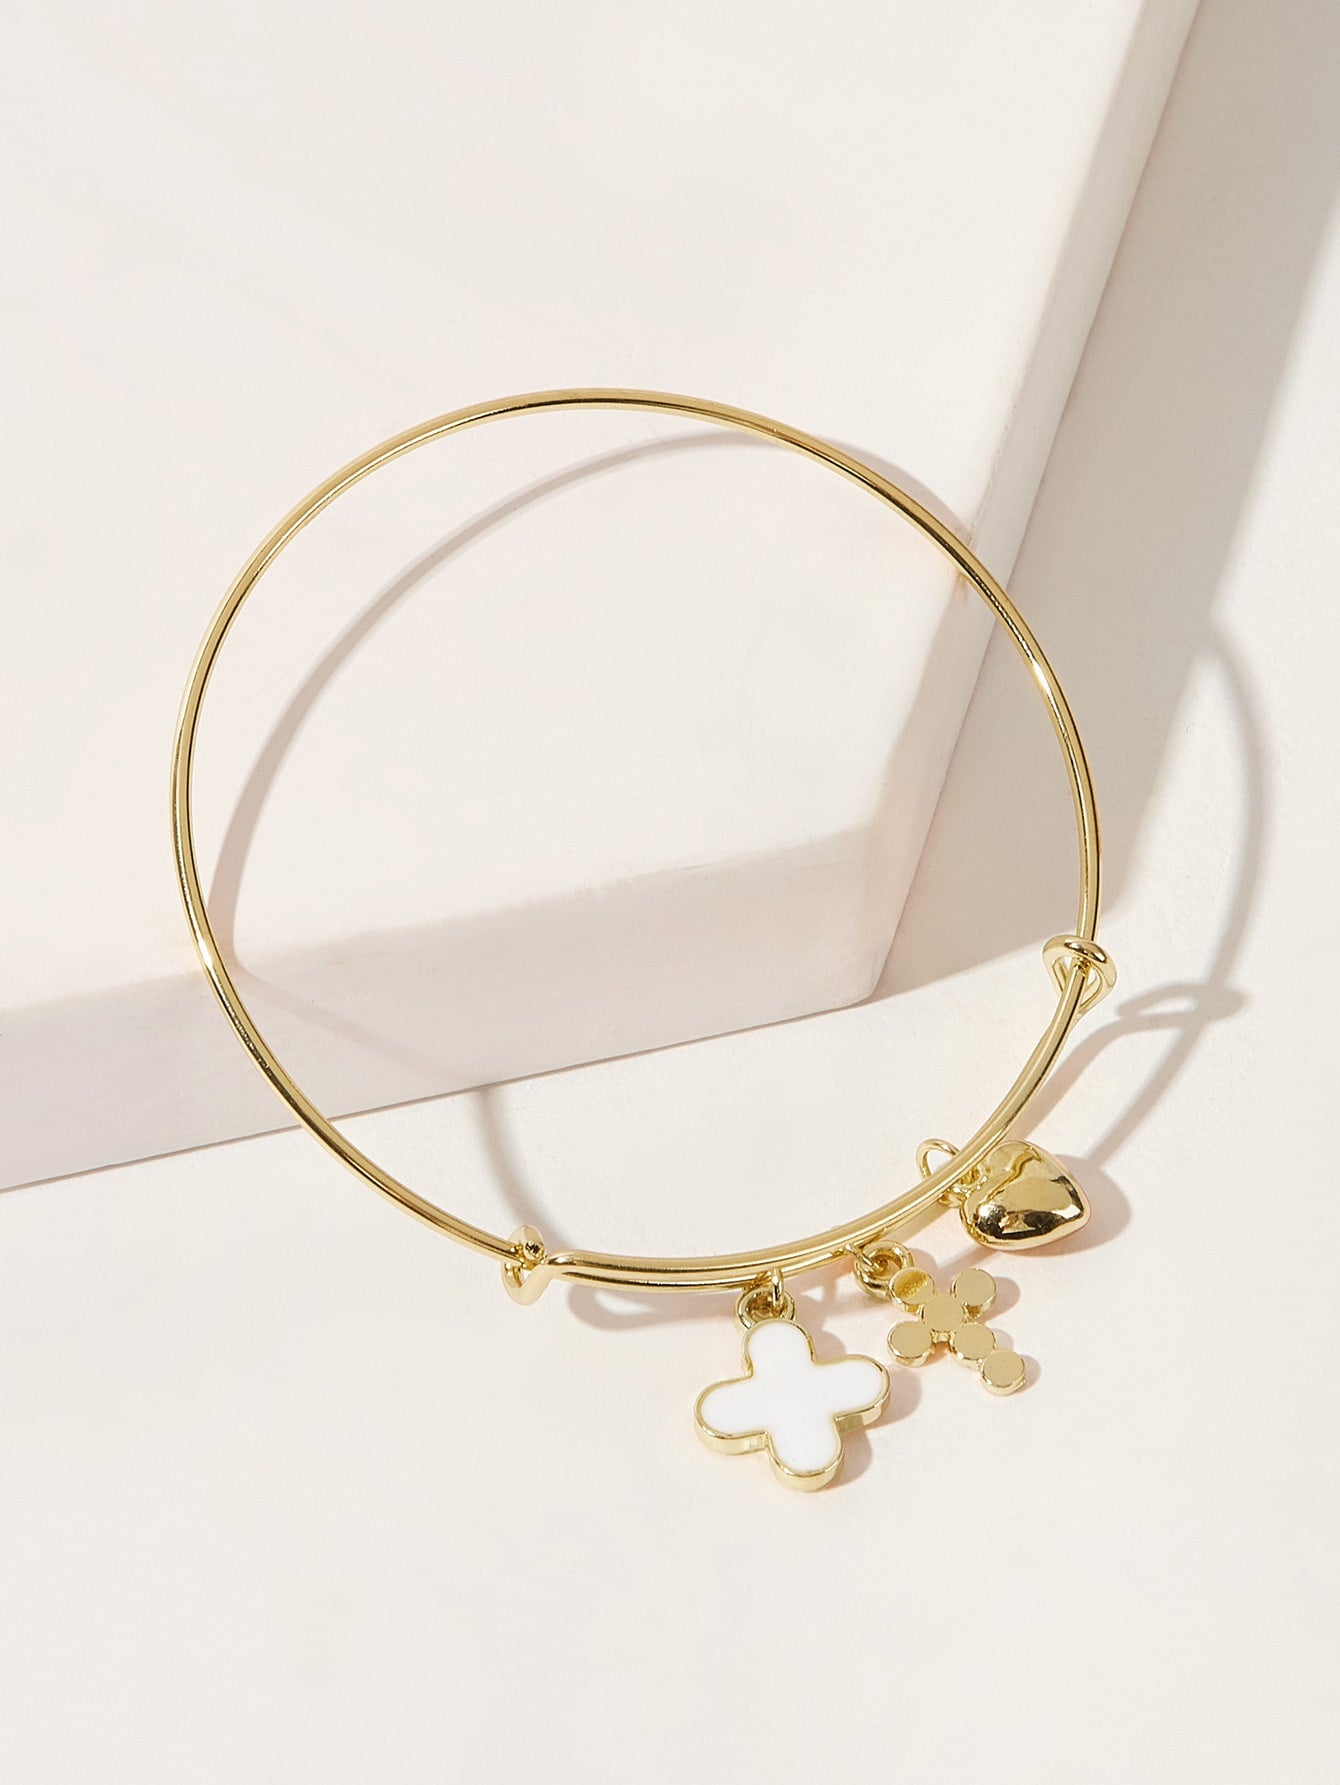 Golden Cross & Heart Charm Bangle Bracelet 1pc